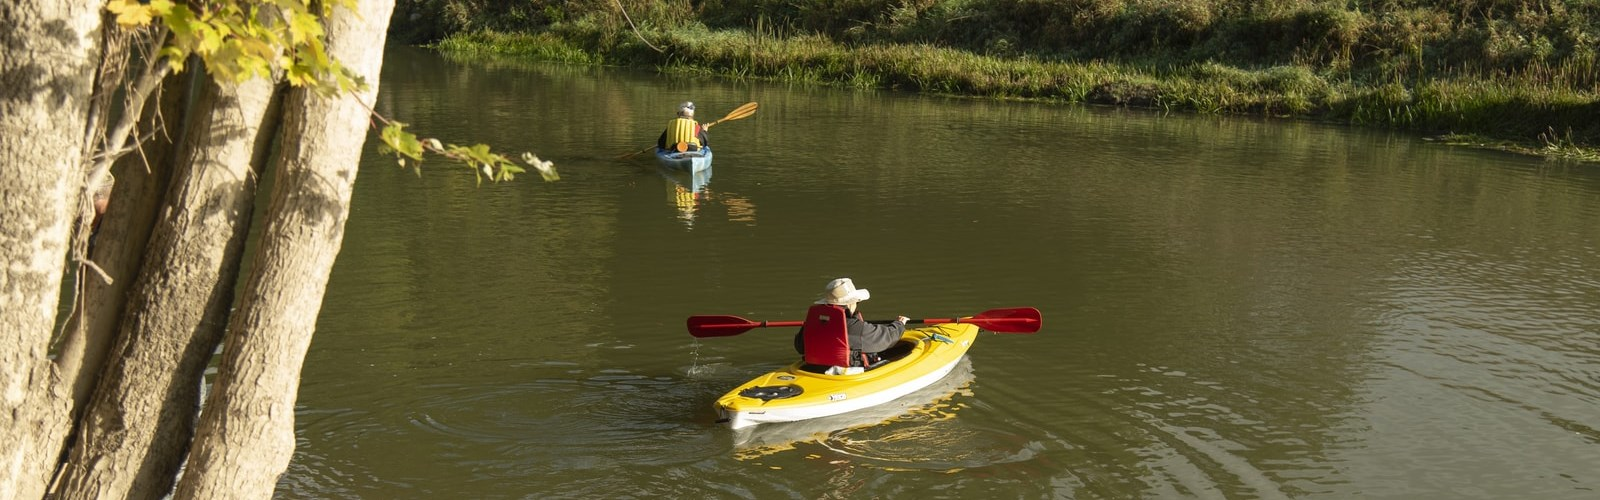 Two older adults kayaking